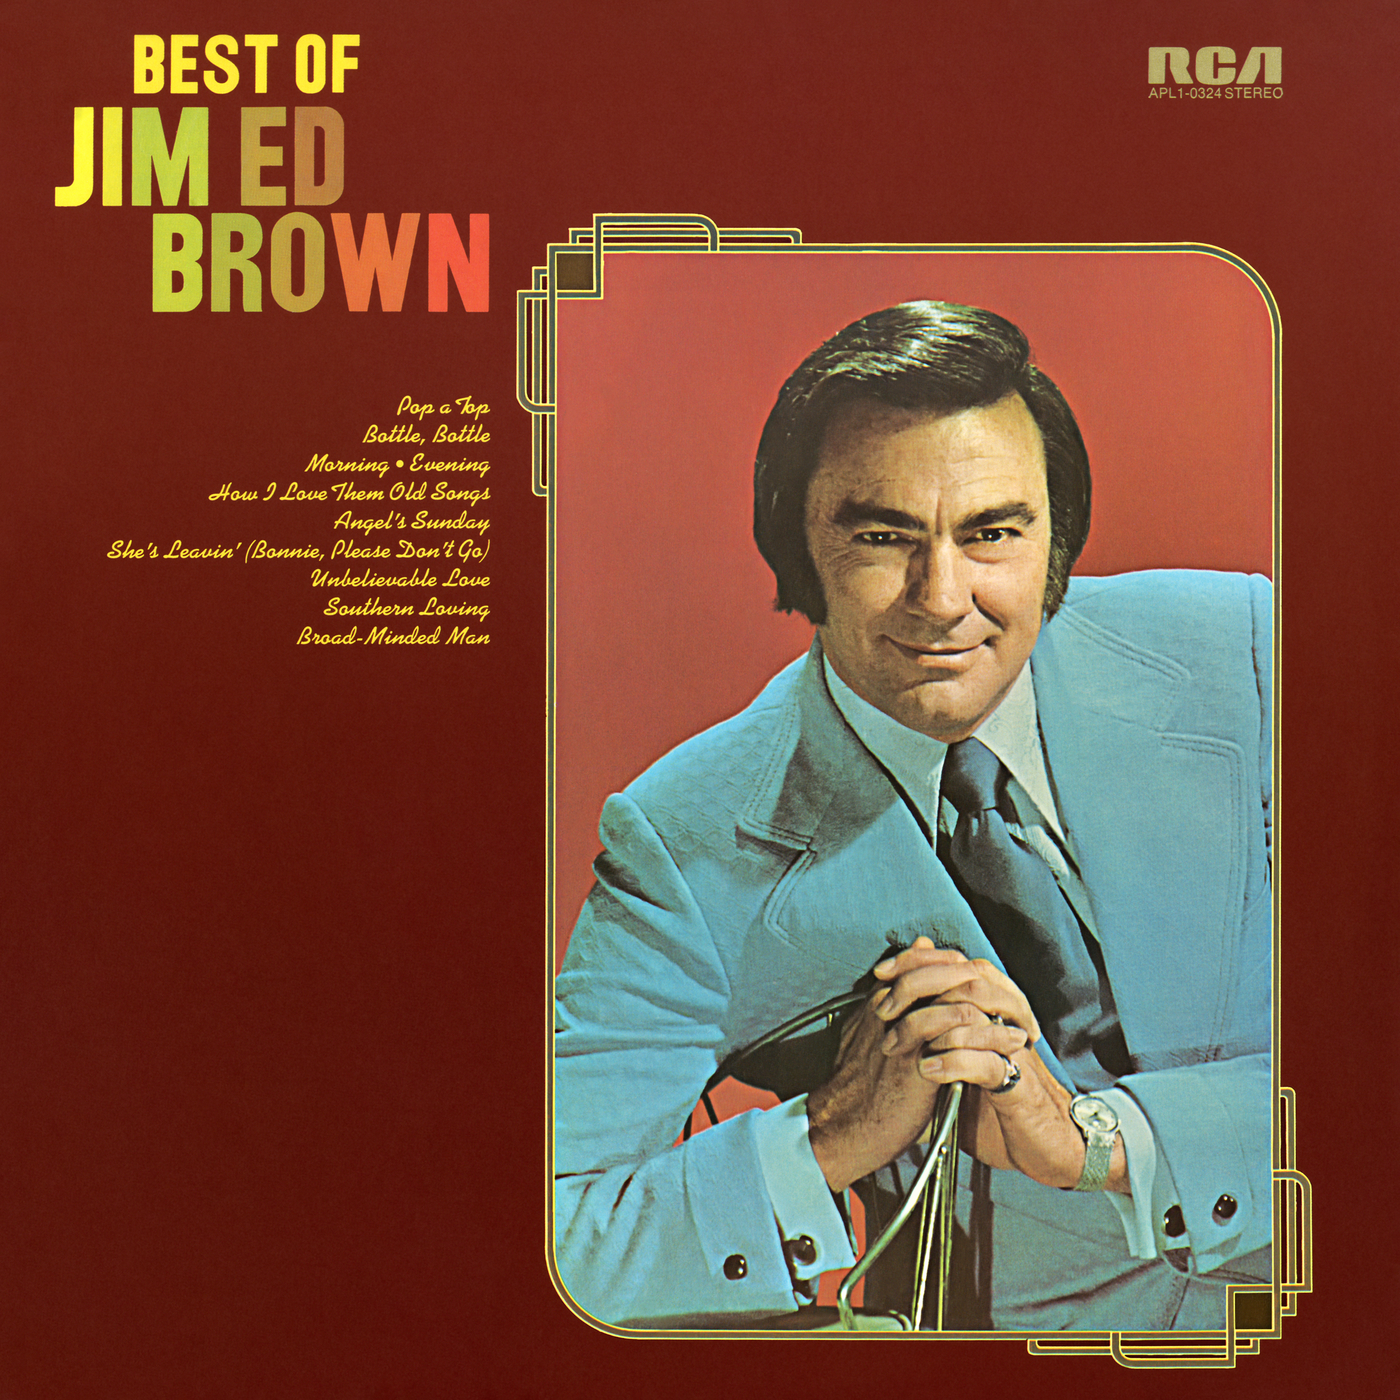 The Best of Jim Ed Brown - Jim Ed Brown